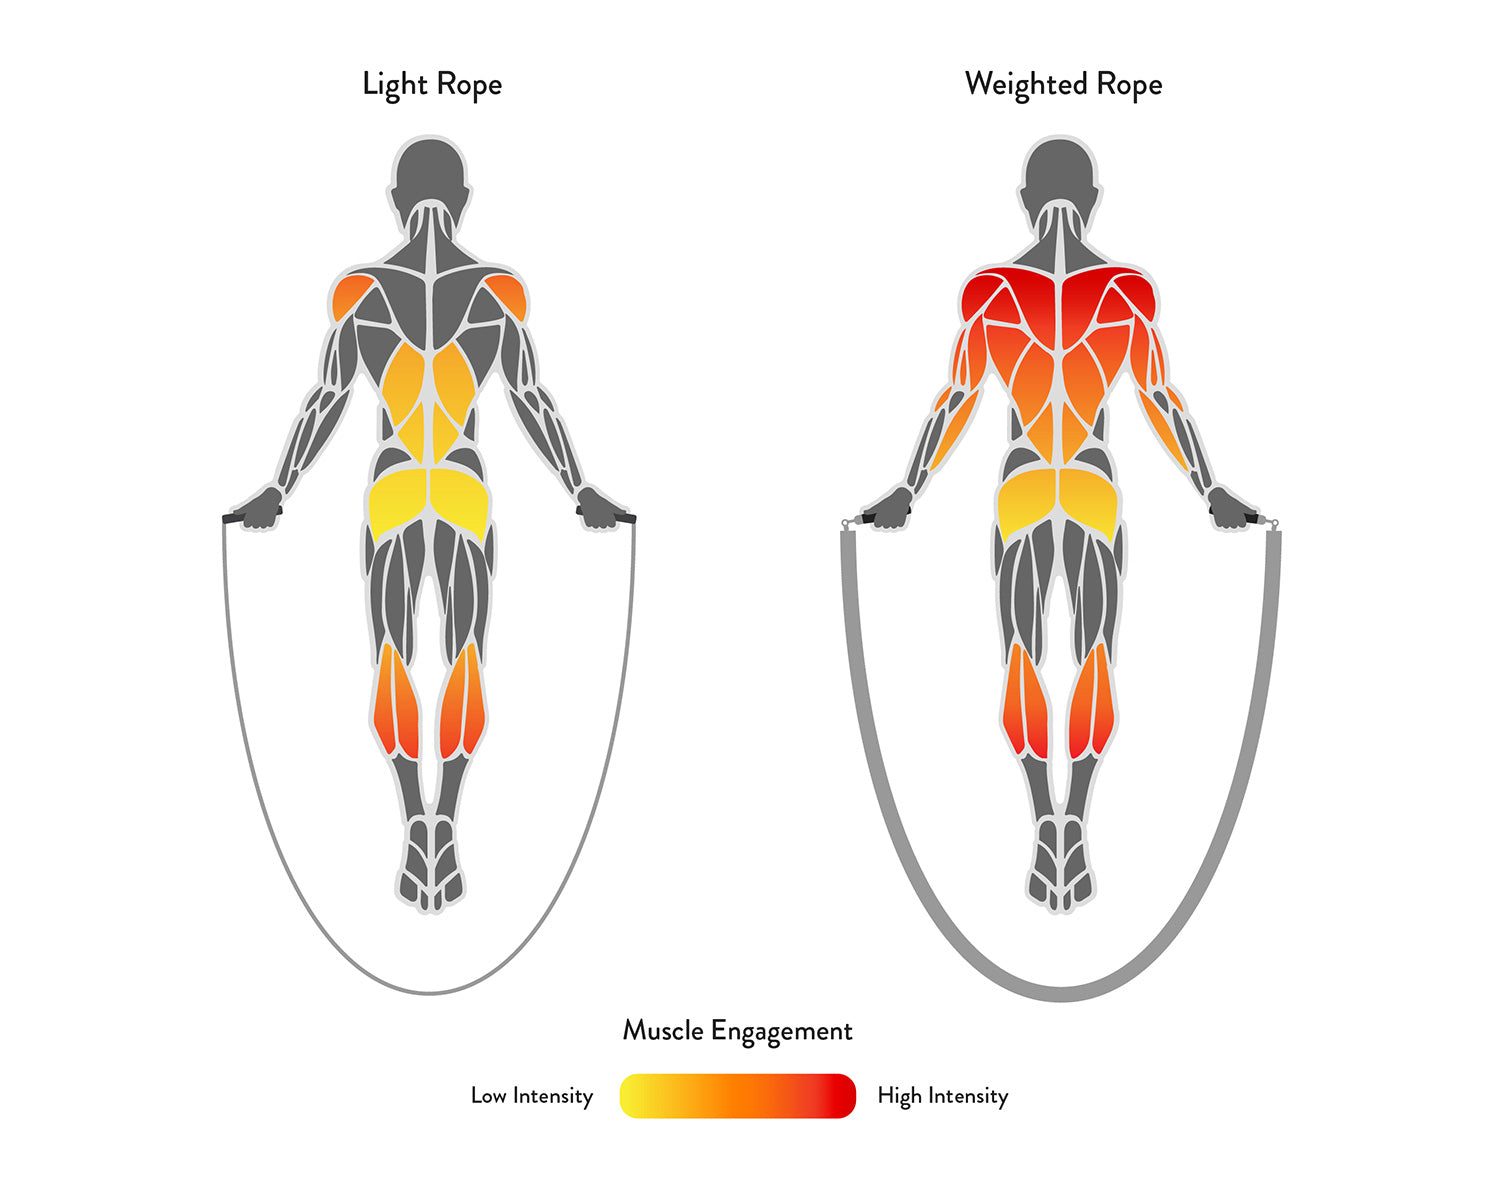 Muscle engagement comparison between light and weighted jump ropes